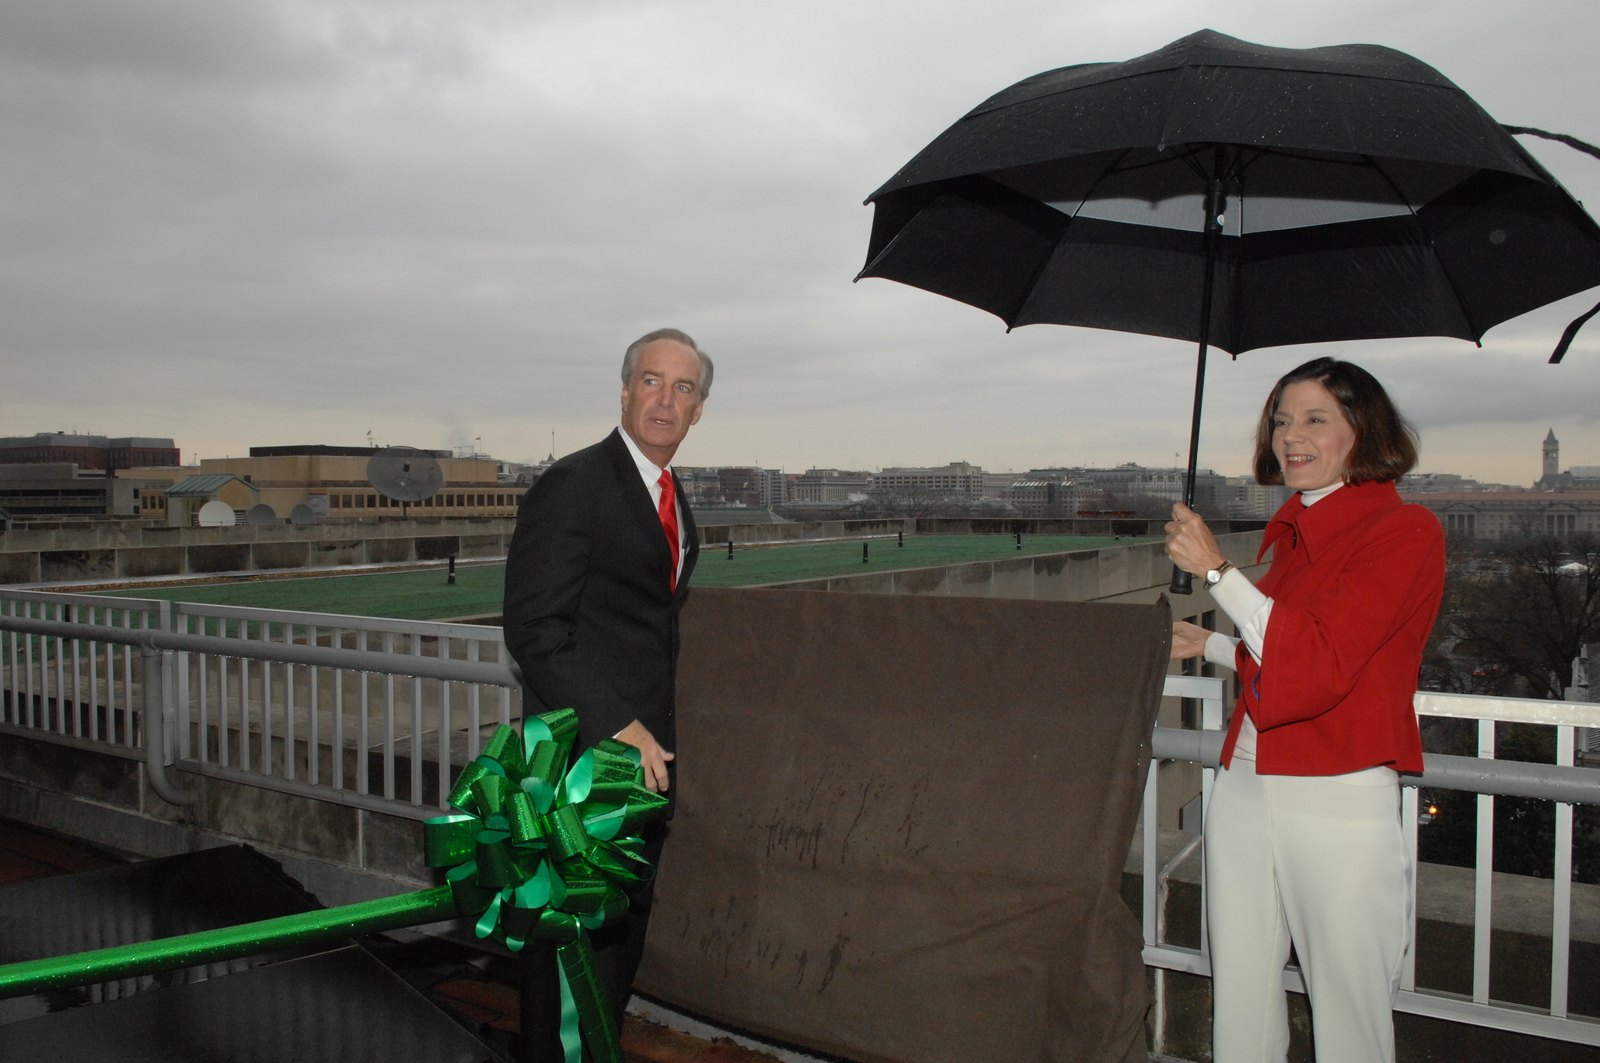 """[Assignment: 48-DPA-12-16-08_SOI_K_Green_Roof] Event marking the success of the Green Roof installation [atop the Main Interior Building (""""Green Roof in Action""""),] with Secretary Dirk Kampthorne, [Deputy Secretary P. Lynn Scarlett, and other senior officials on hand] [48-DPA-12-16-08_SOI_K_Green_Roof_DOI_4515.JPG]"""